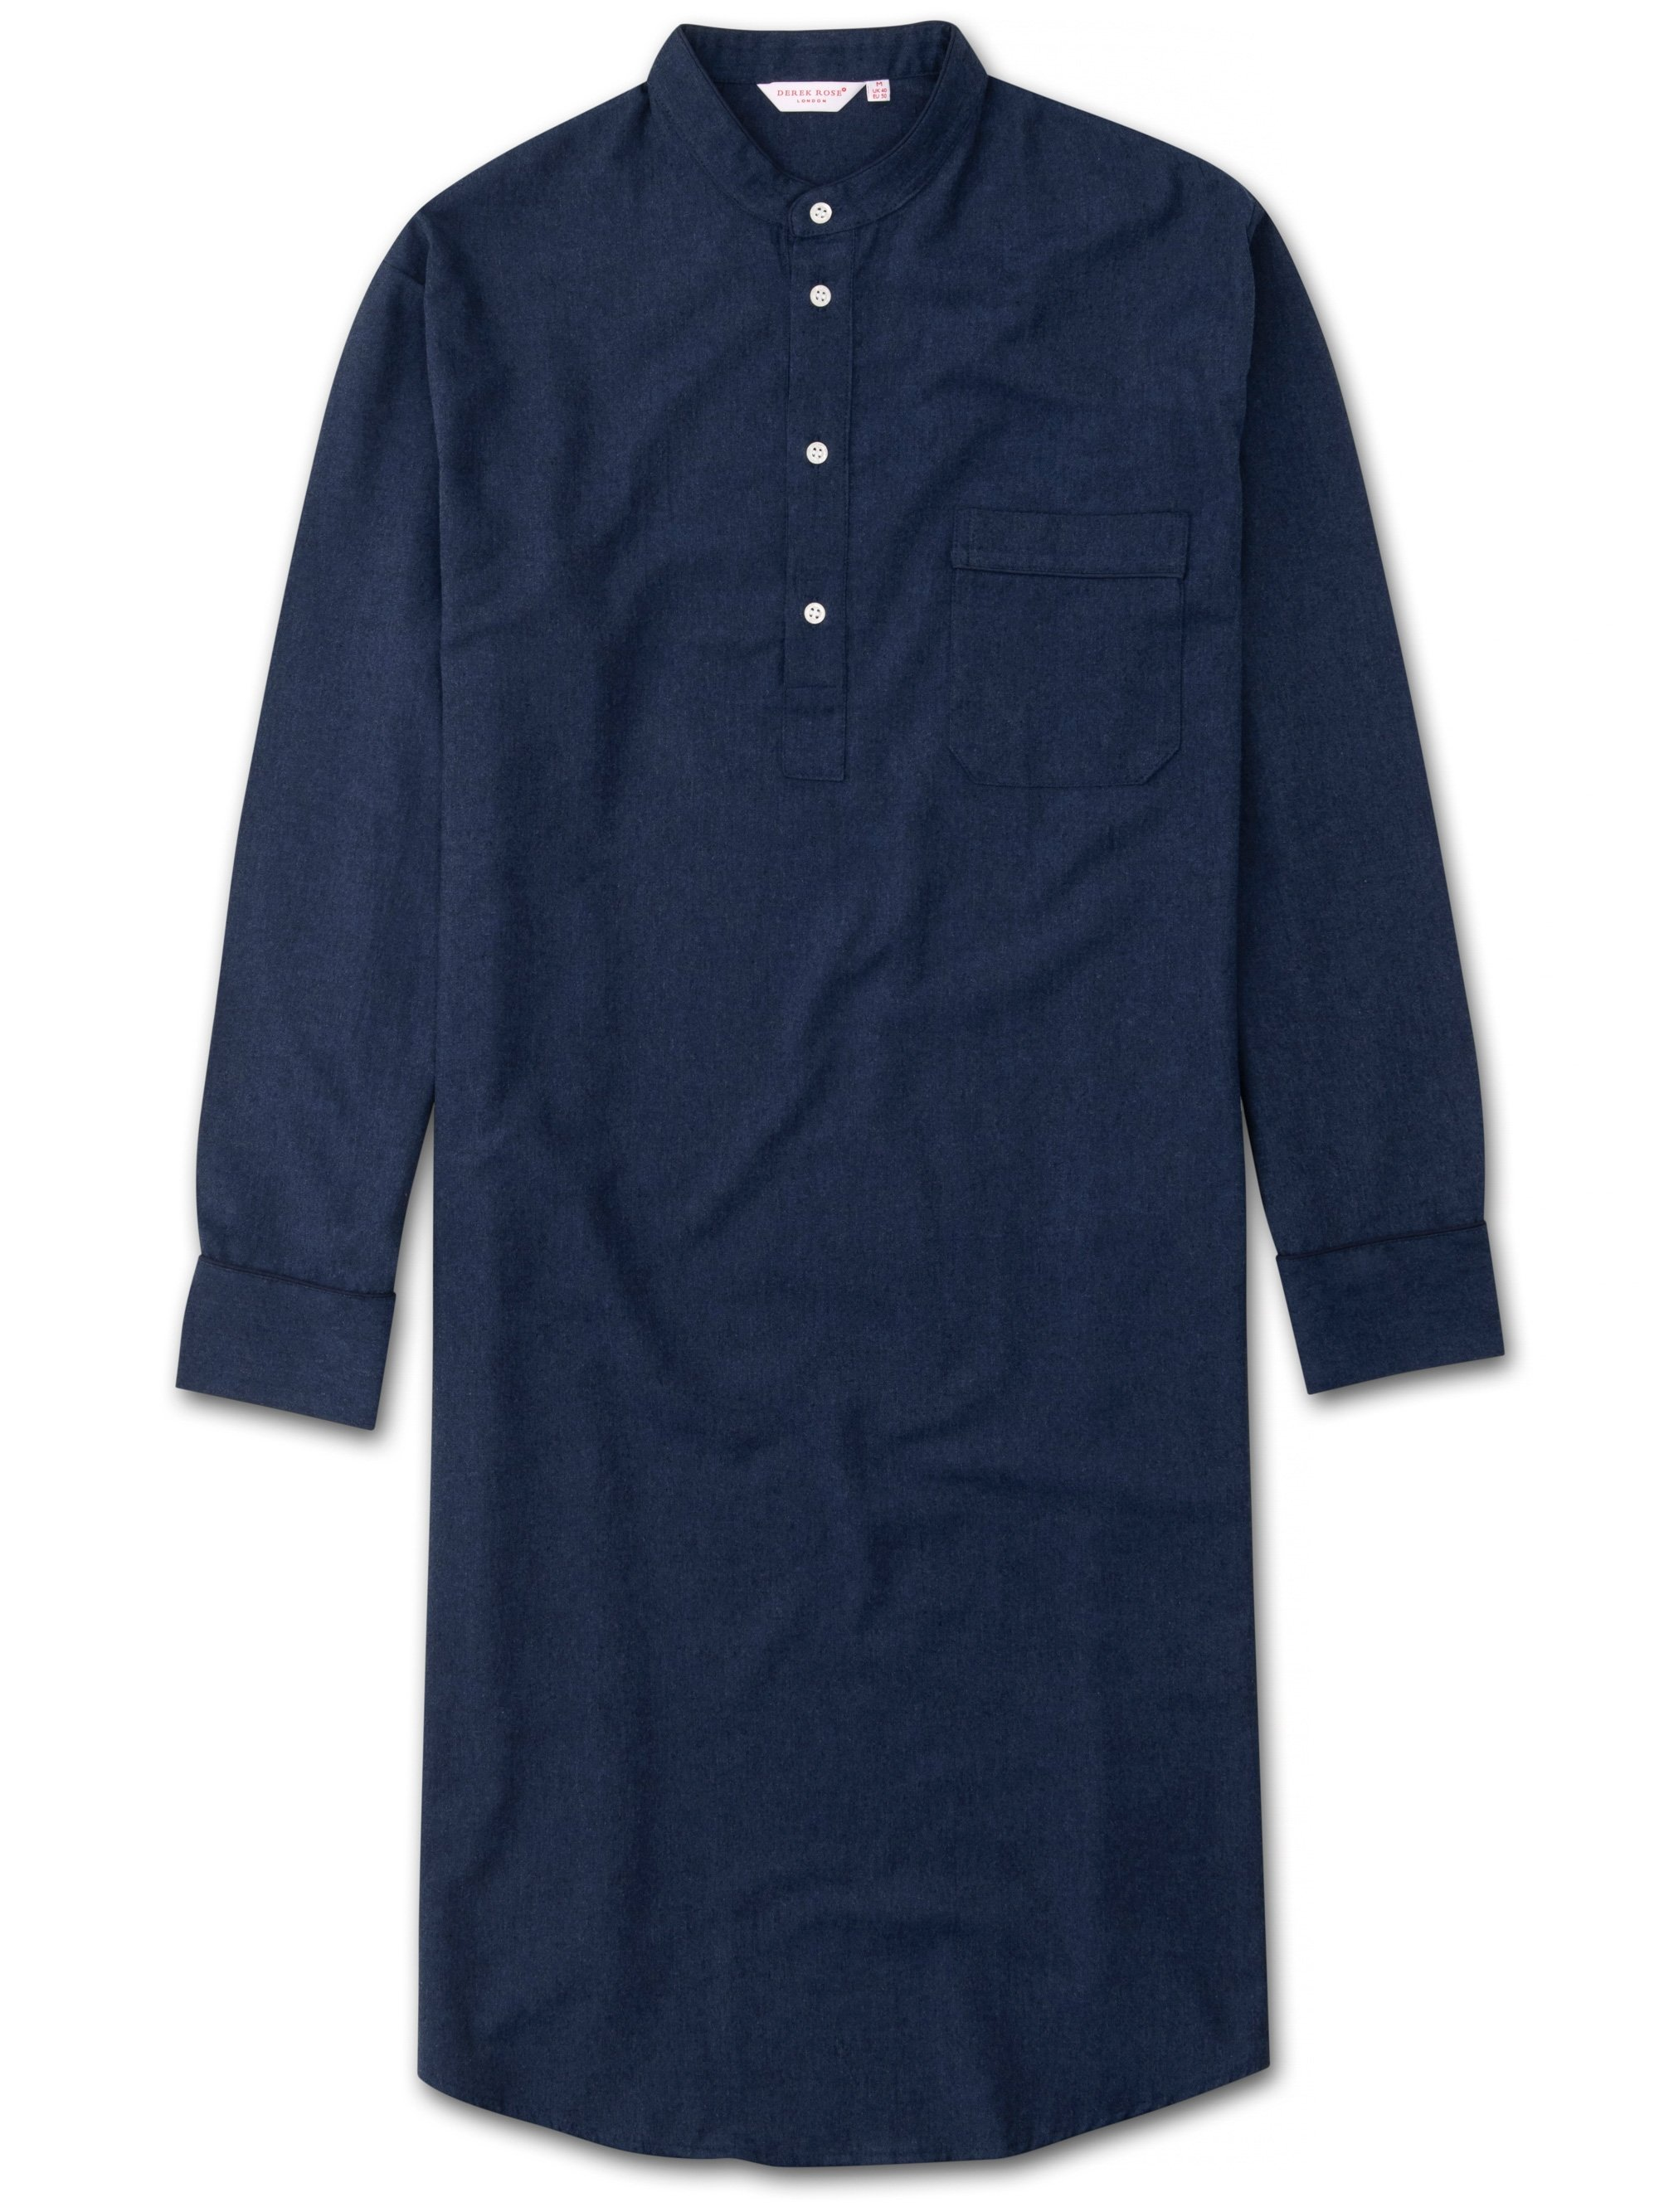 Men's Pullover Nightshirt Balmoral 3 Brushed Cotton Navy